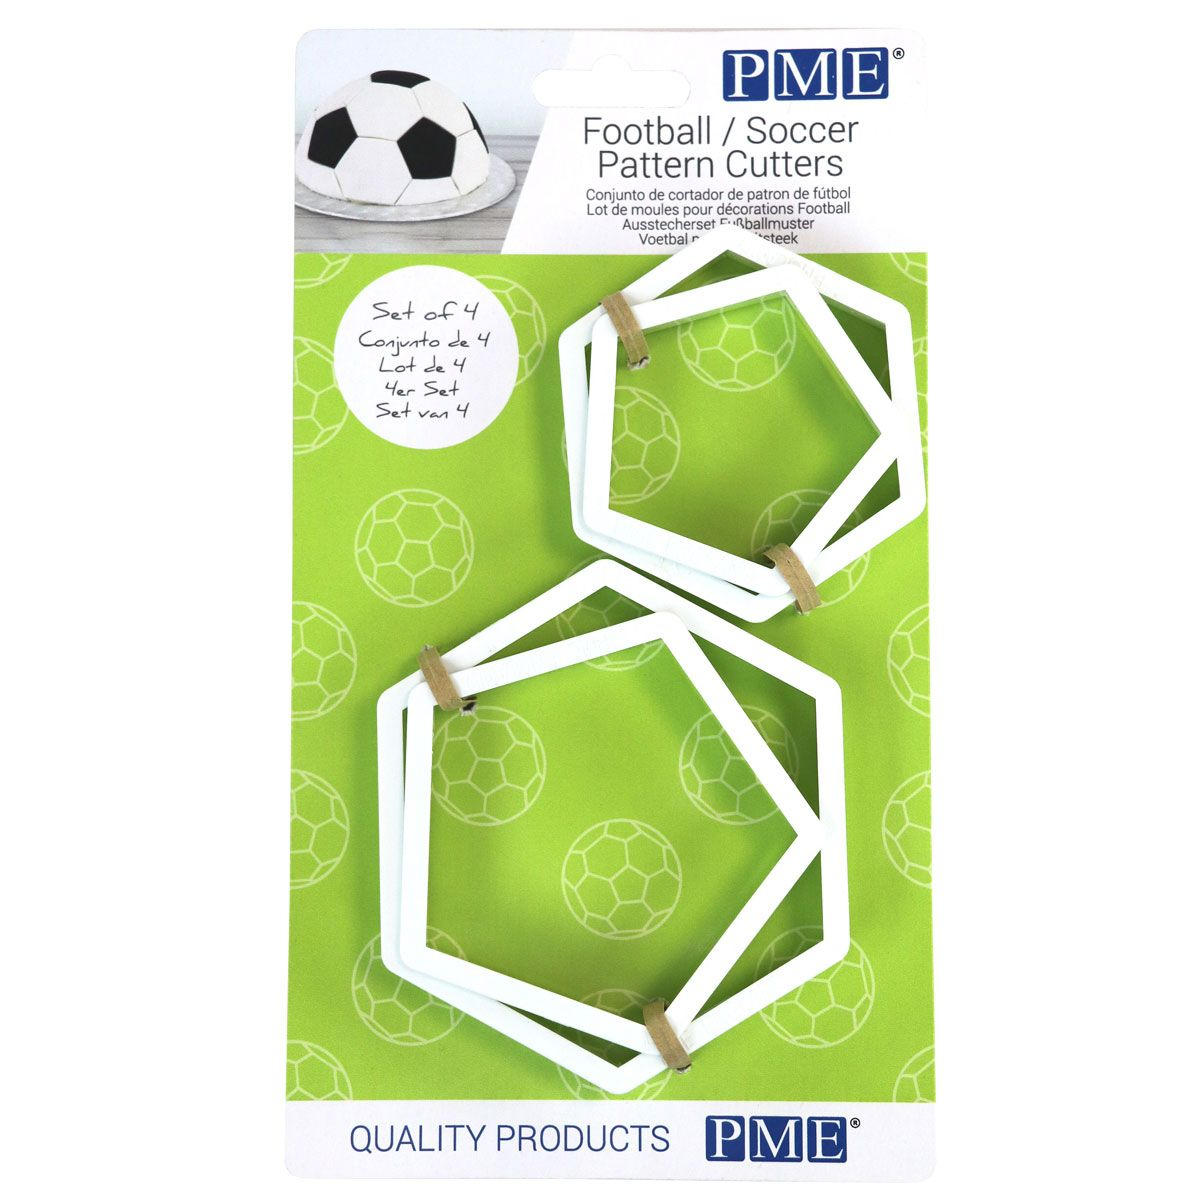 Foto: PME Football/Soccer Pattern Cutters Set/4